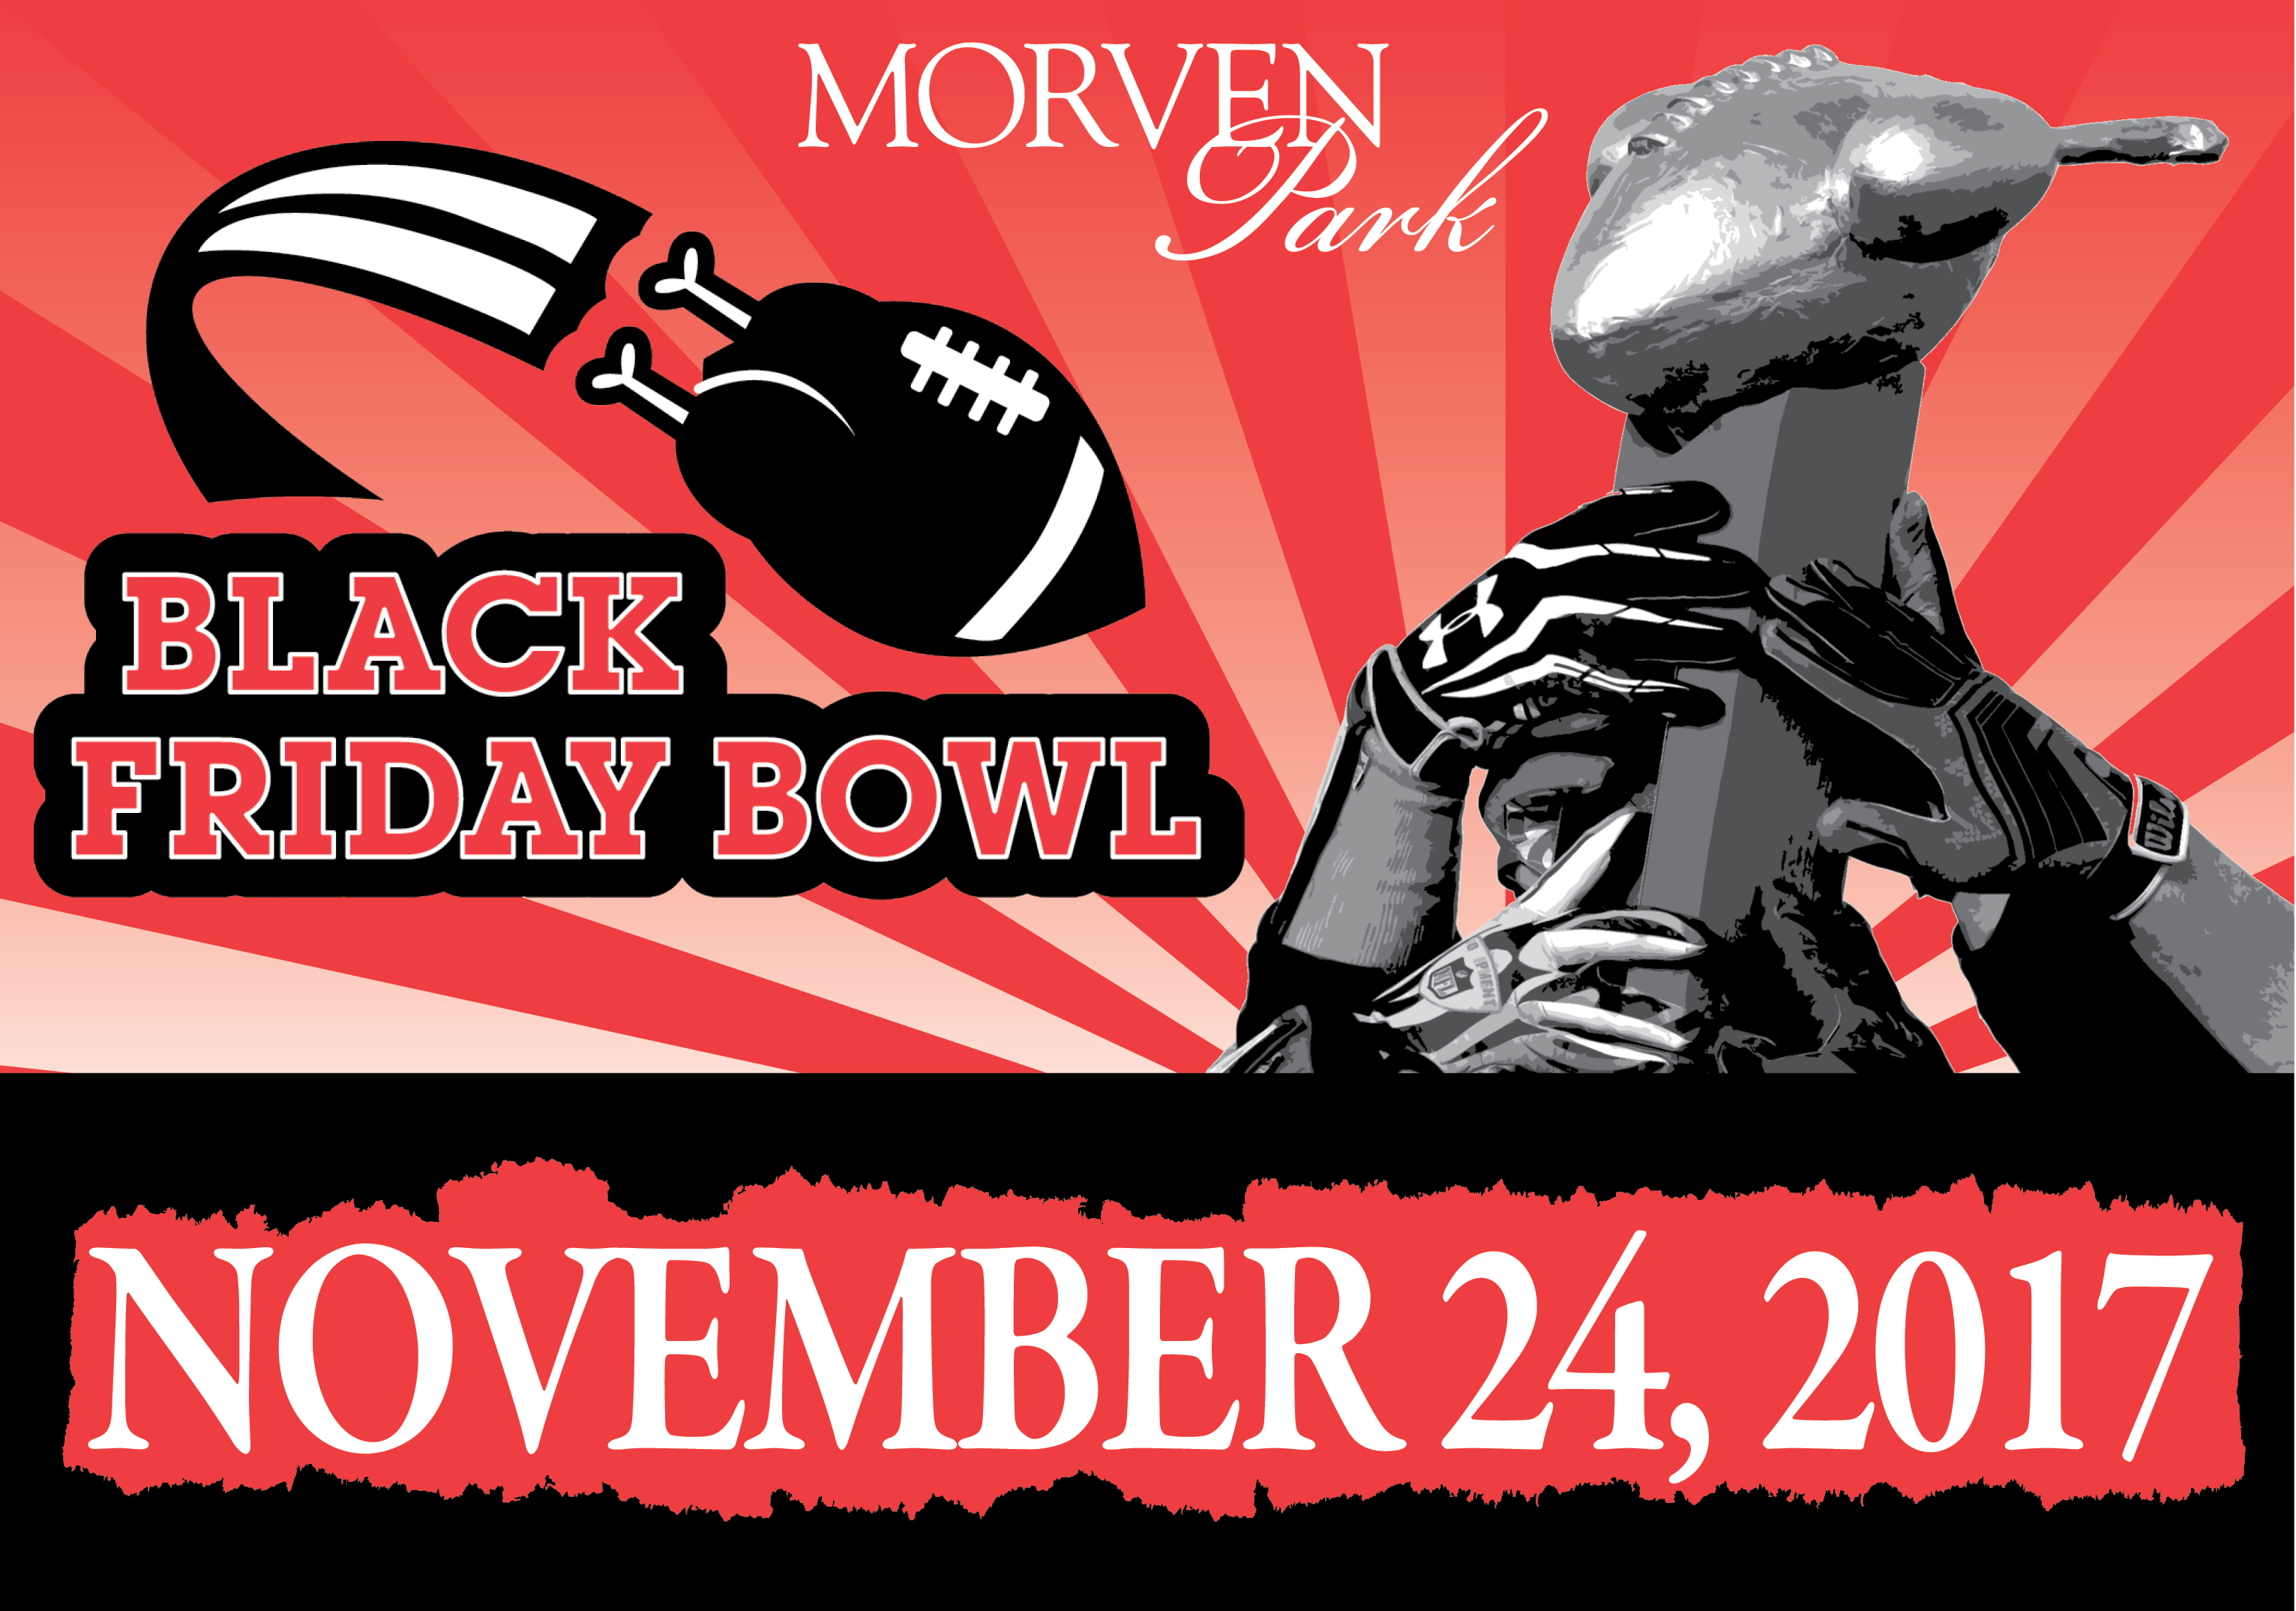 Black Friday Bowl